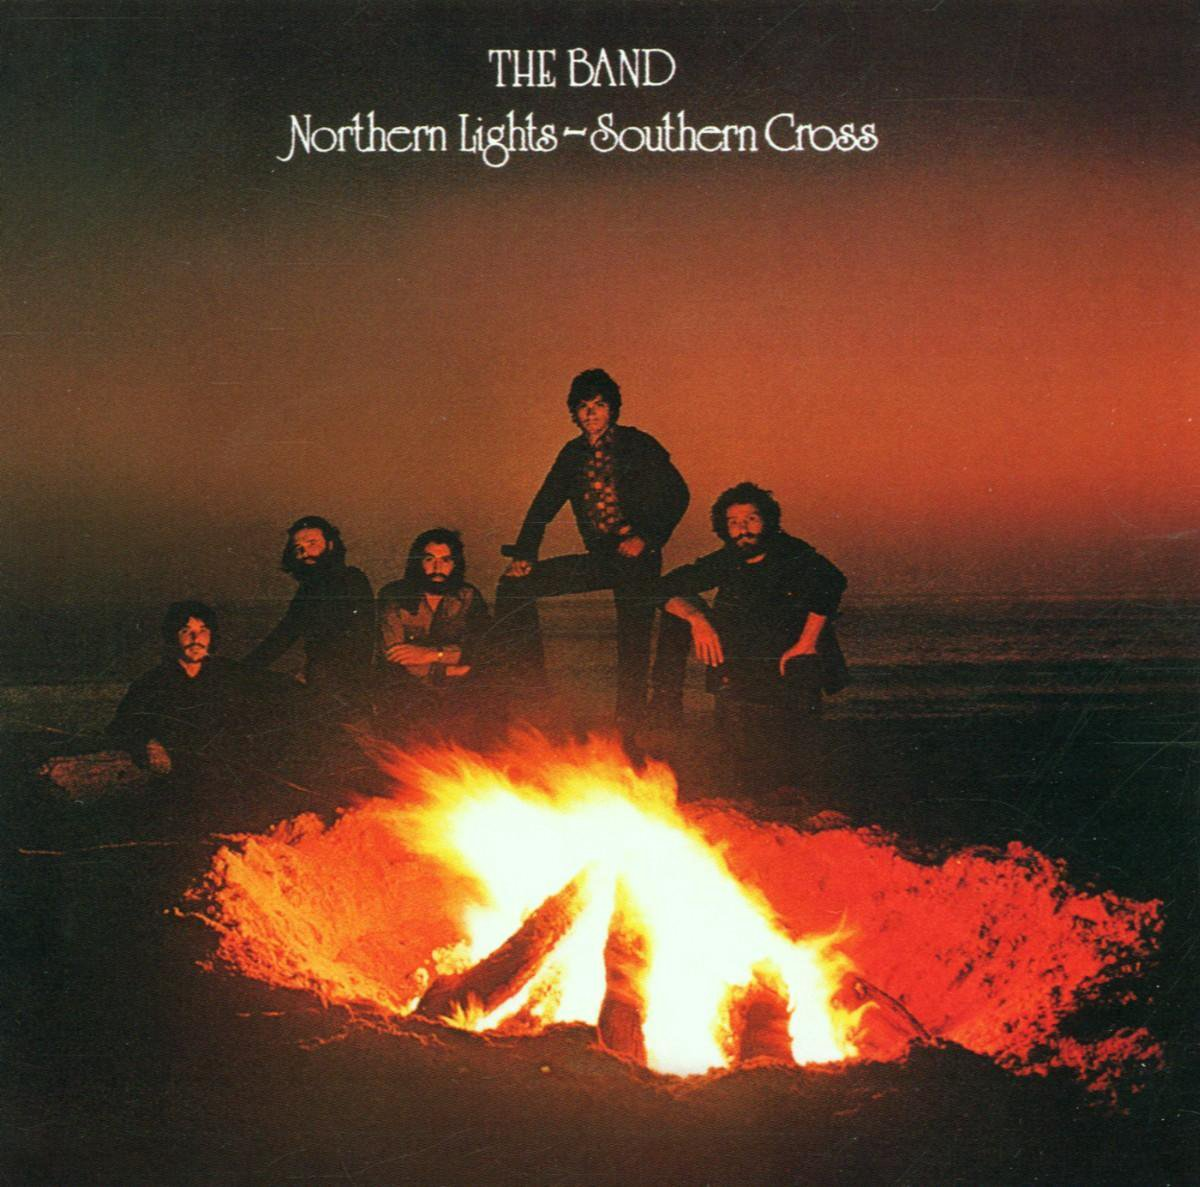 Northern Lights Southern Cross - The Band